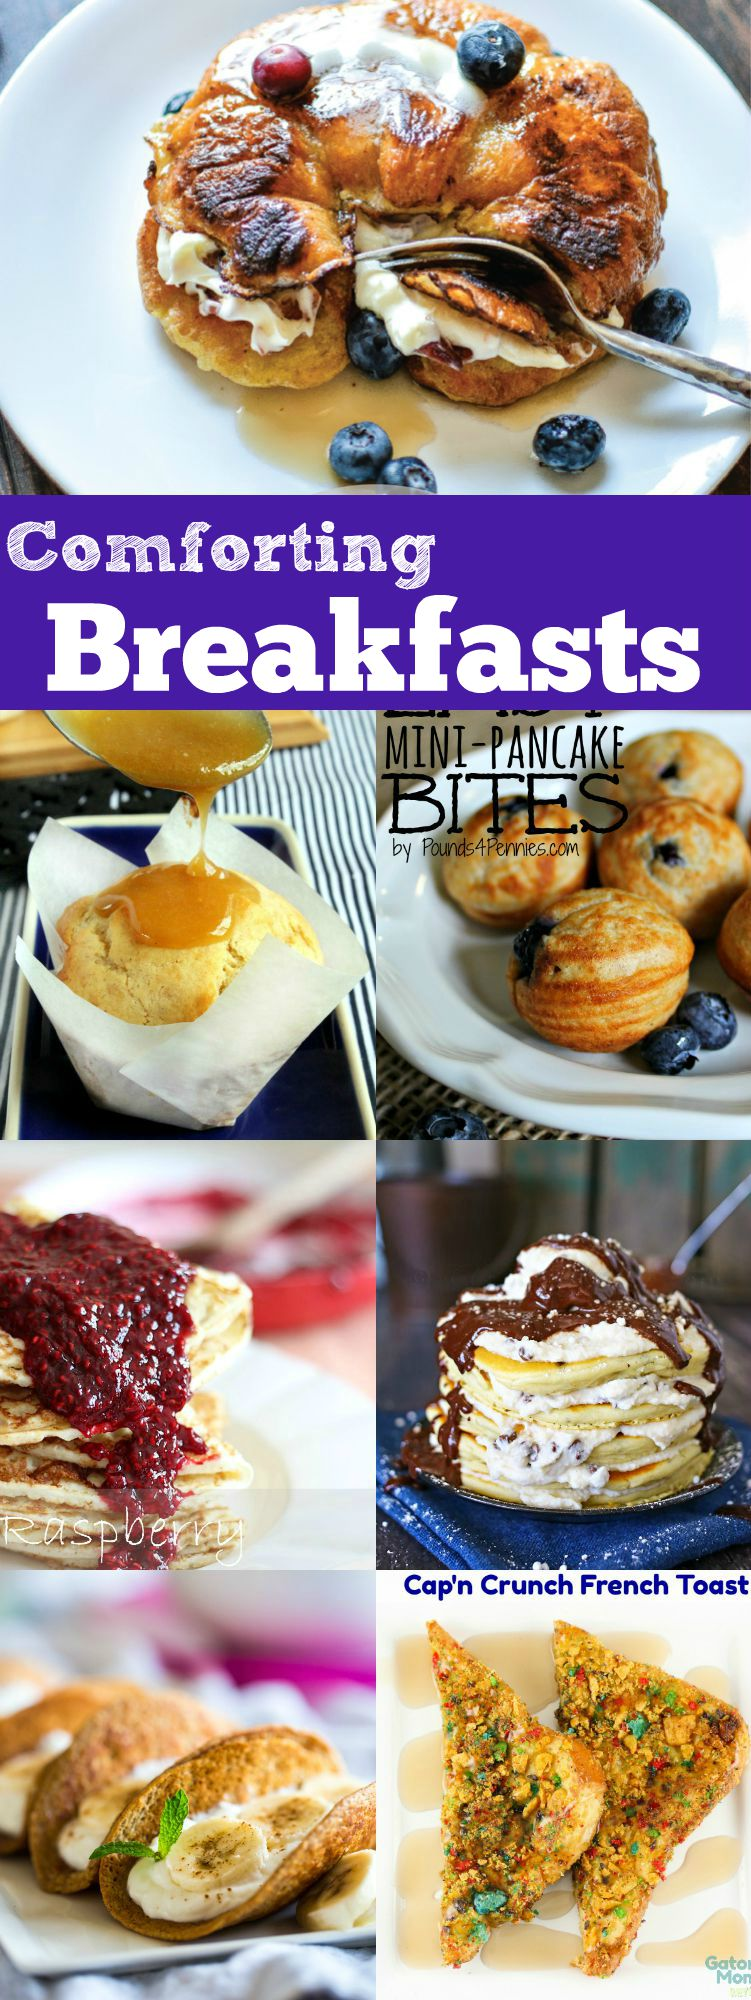 Comforting Breakfasts perfect for brunch!